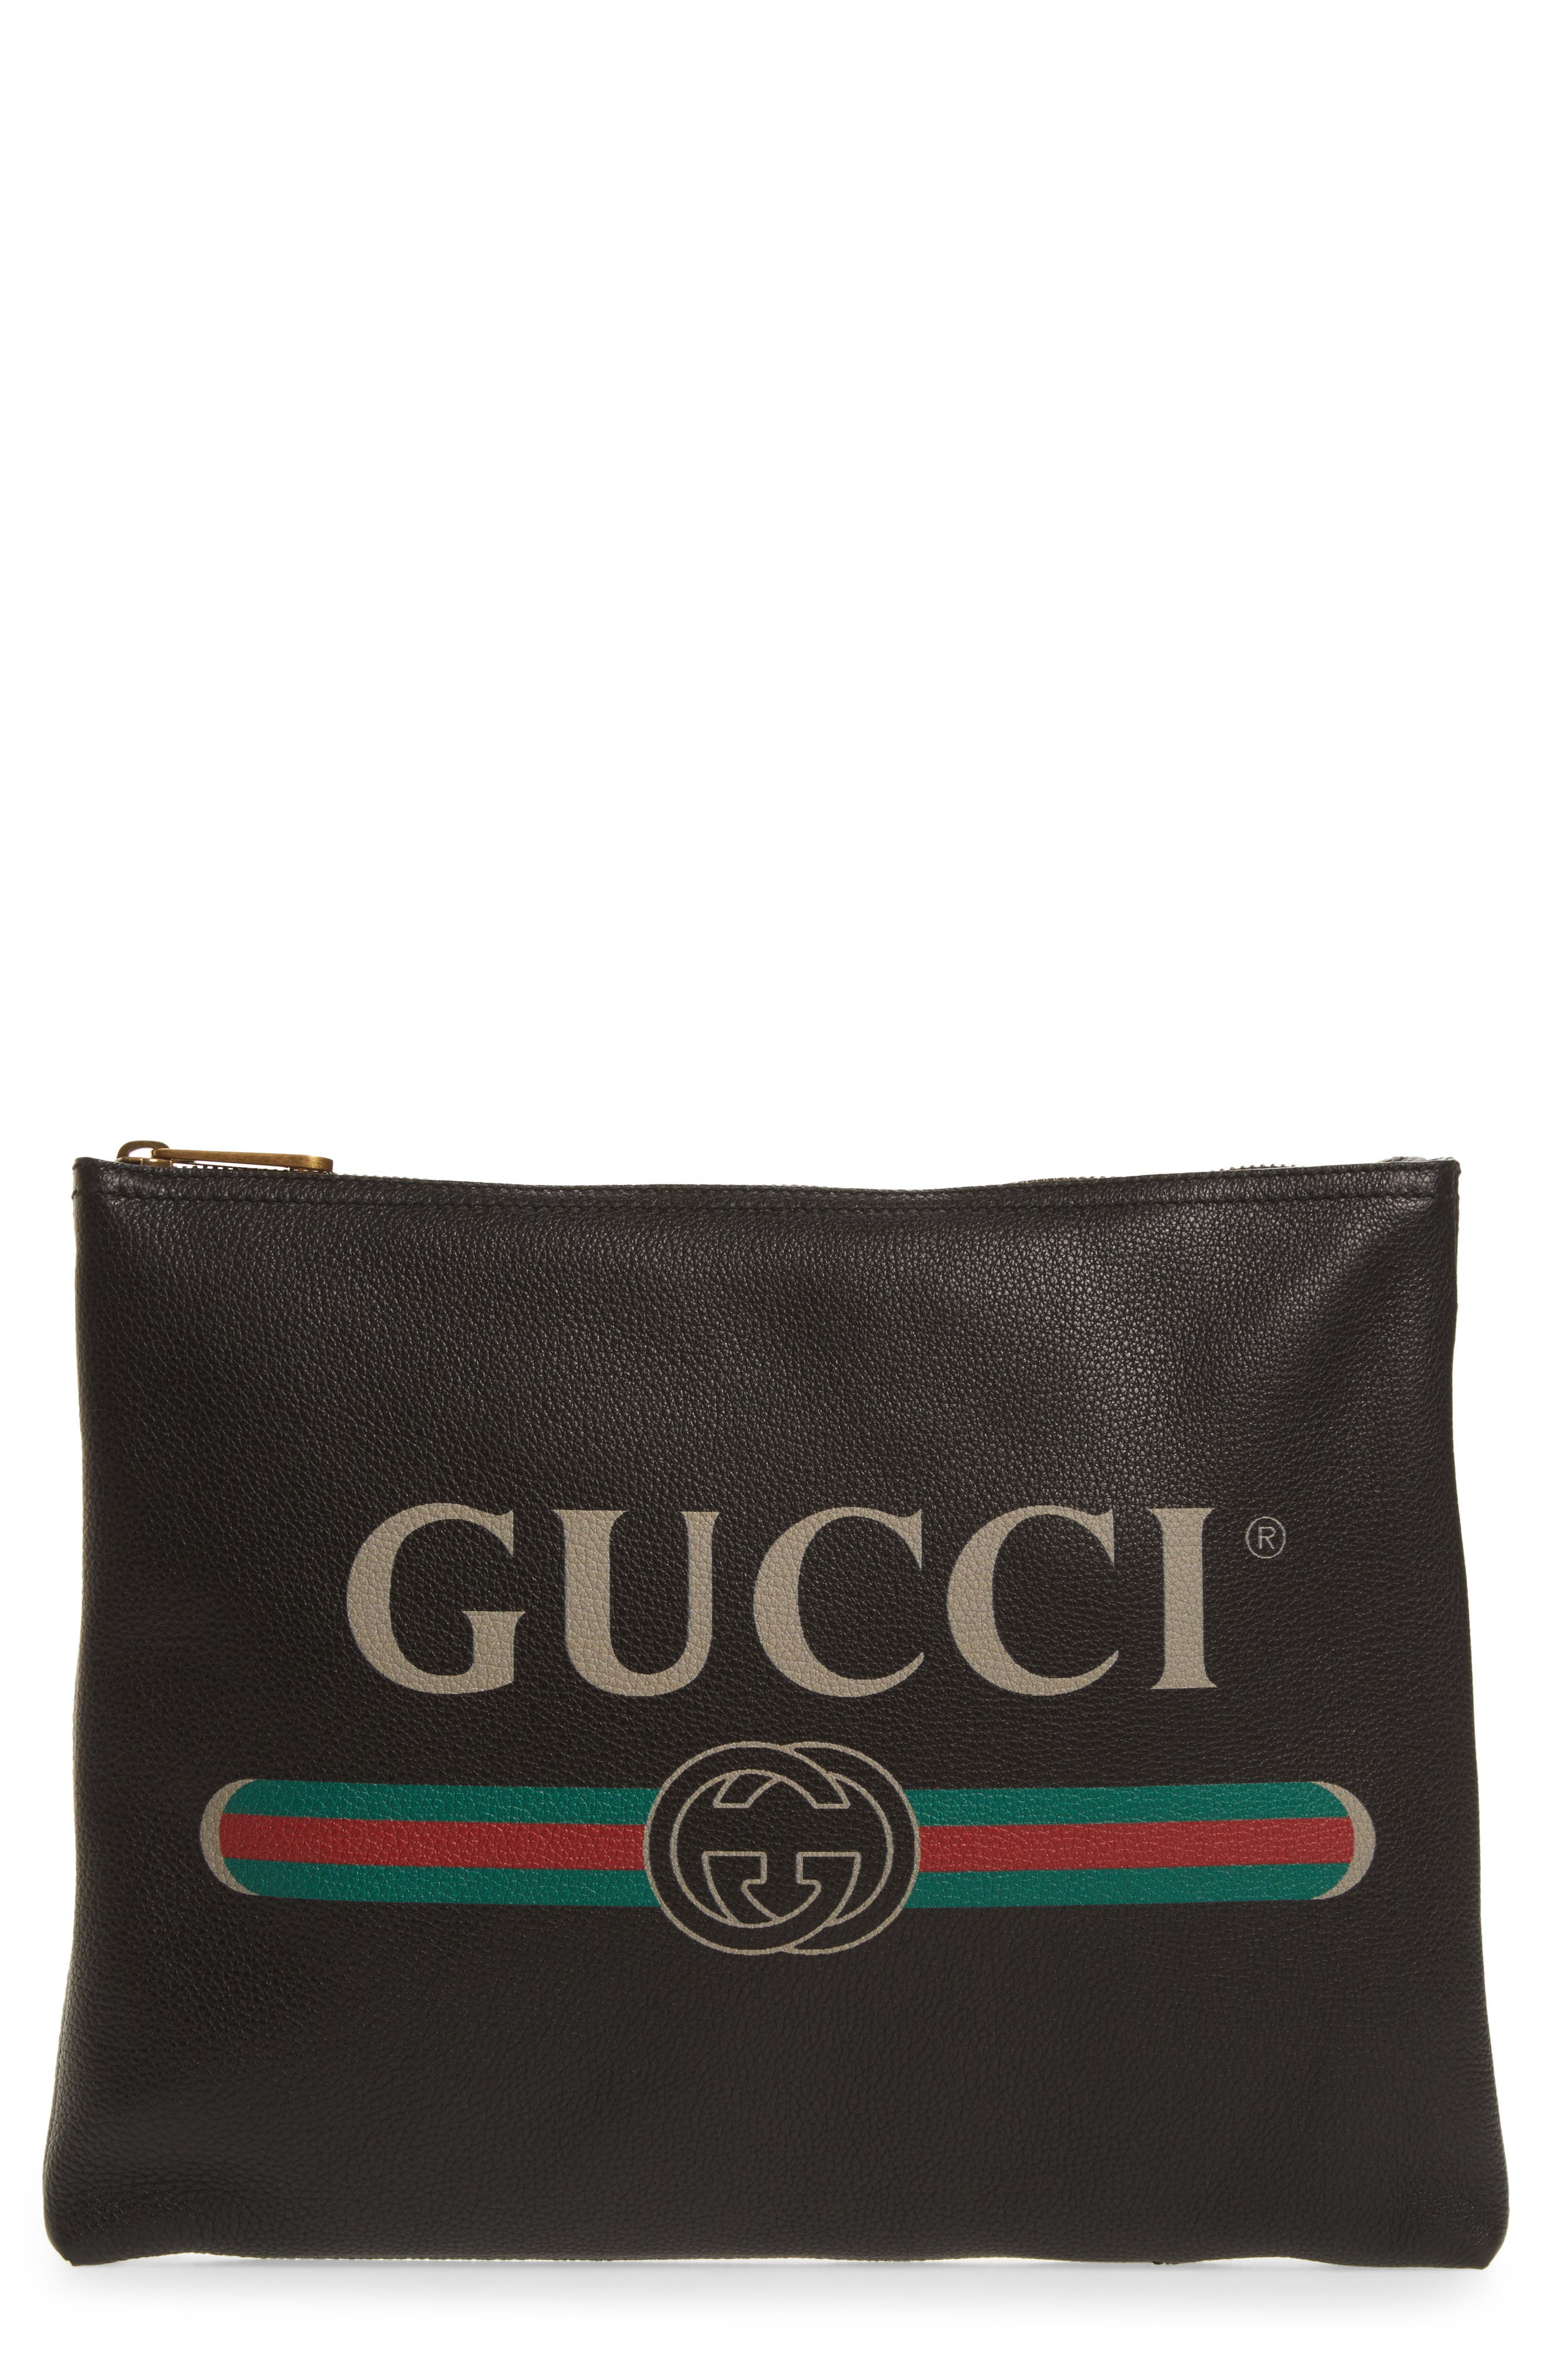 Main Image - Gucci Logo Leather Pouch